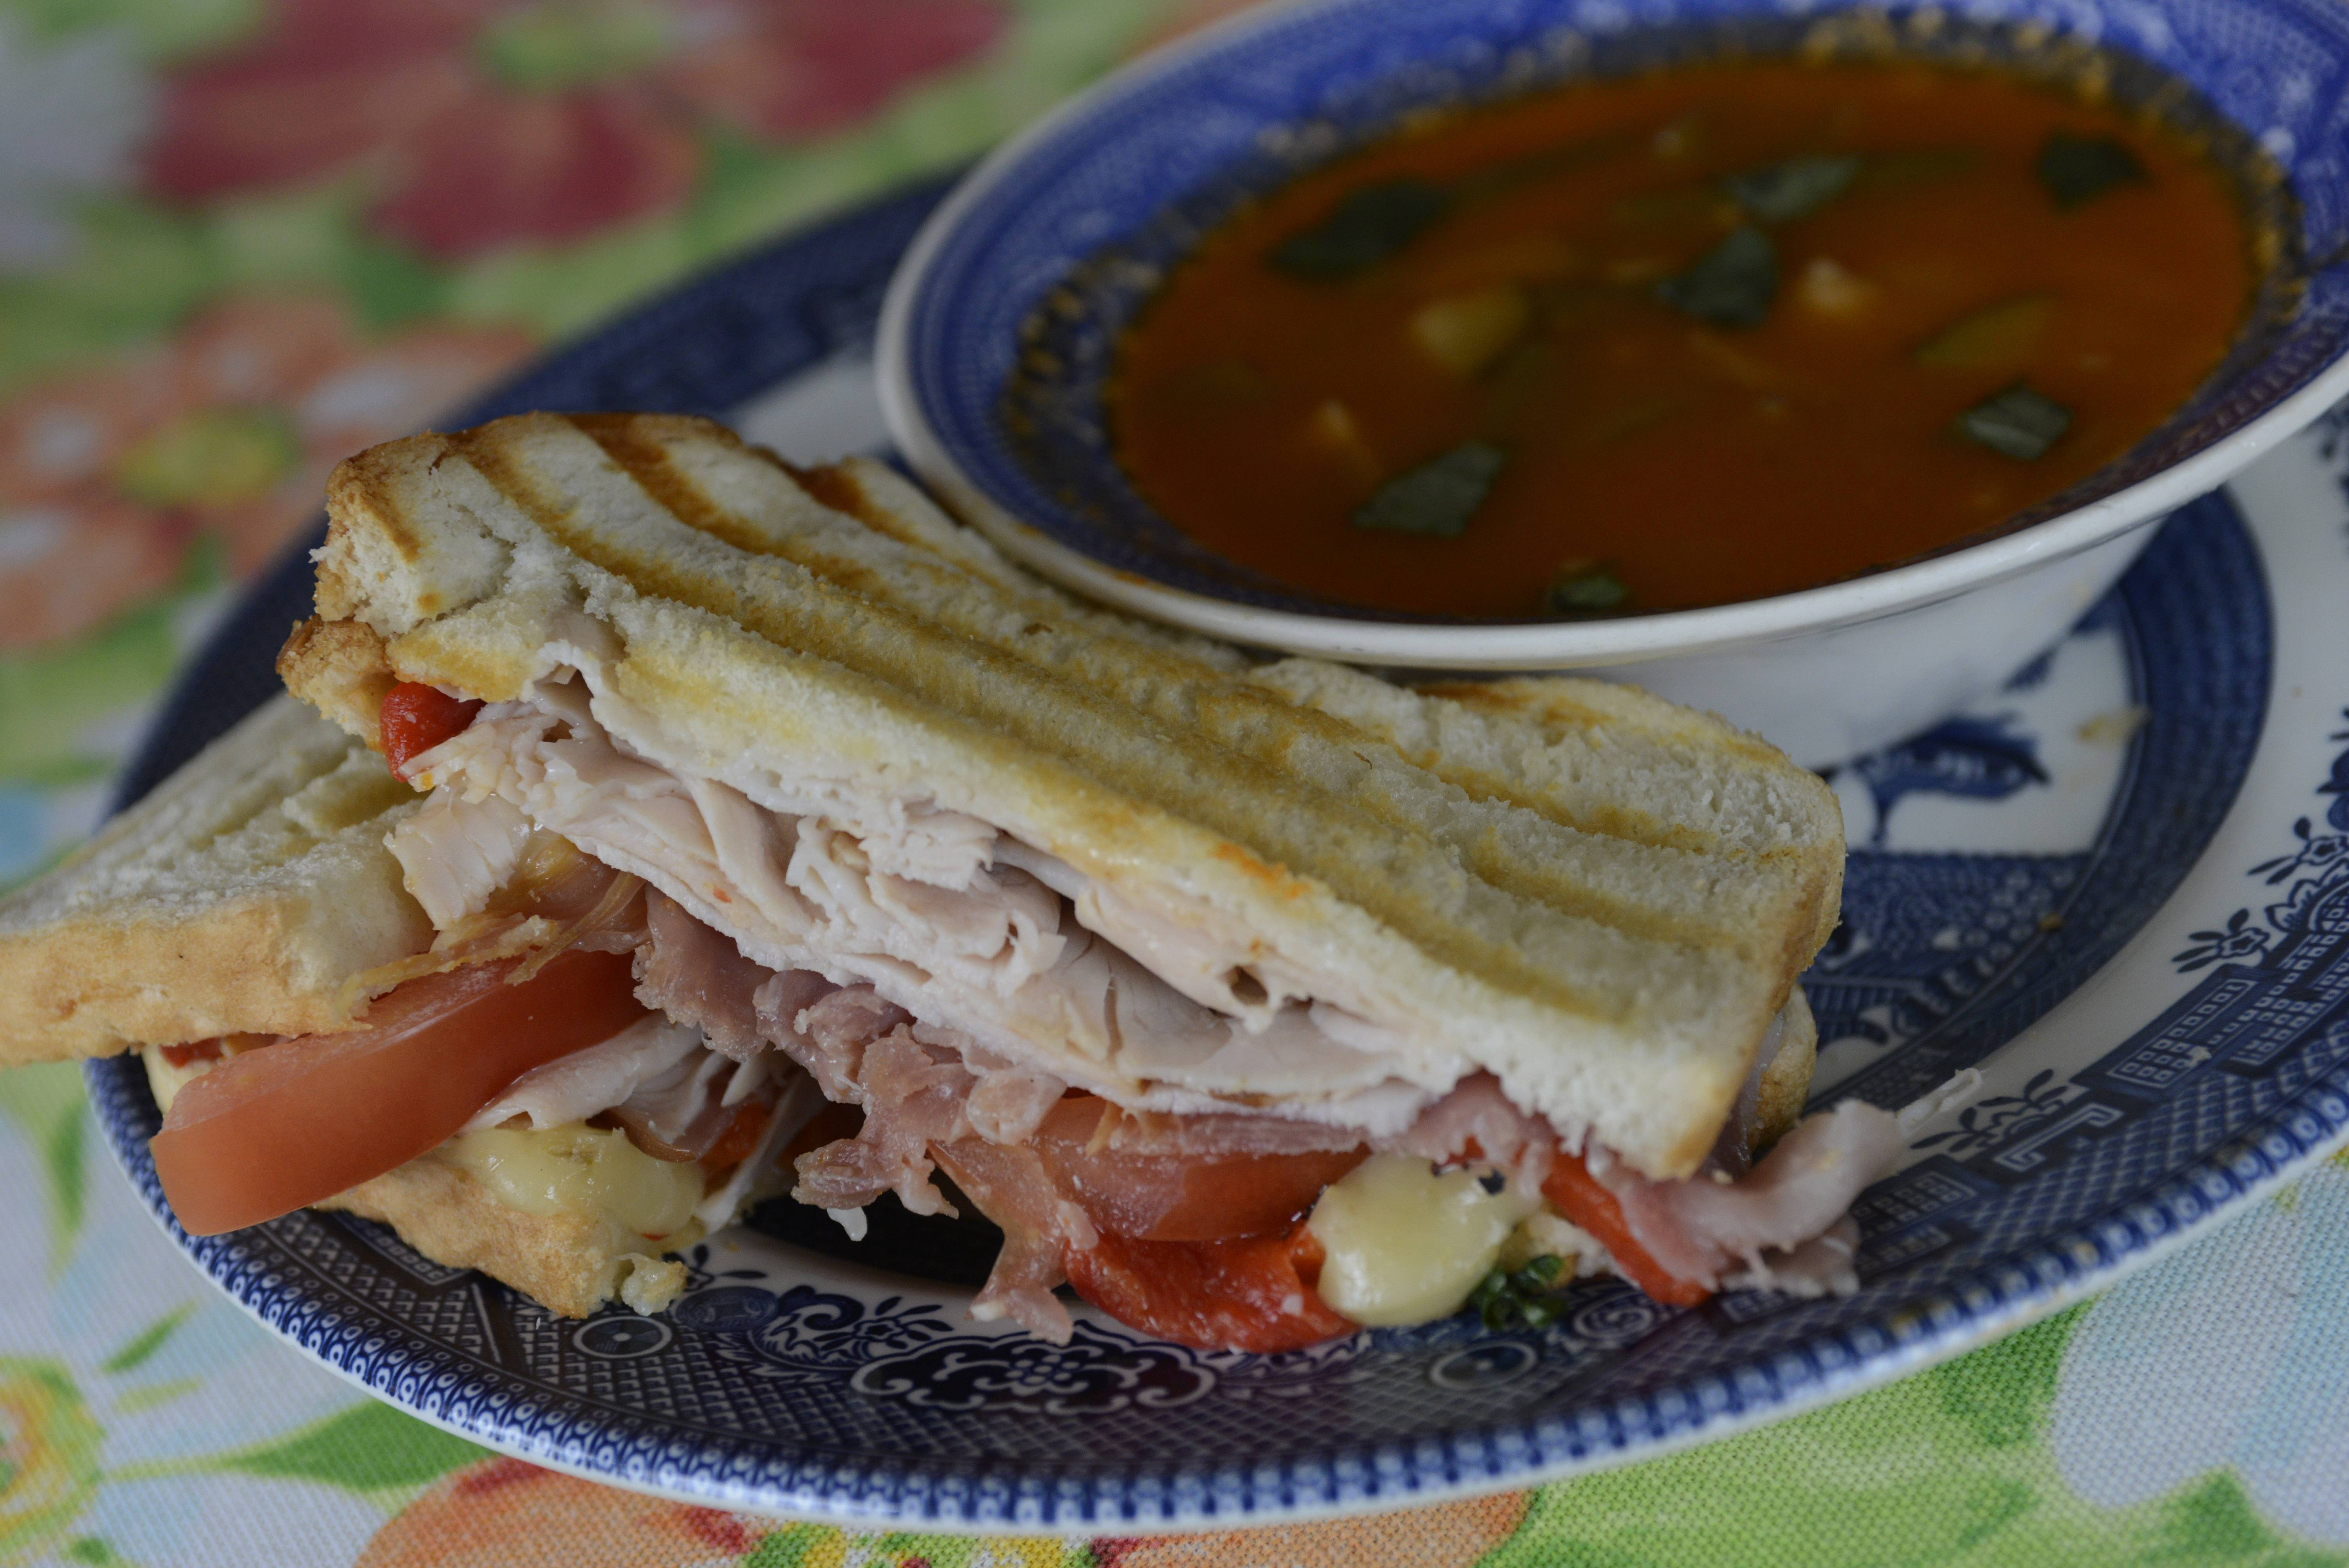 Joe Lewnard/jlewnard@dailyherald.comSoup and sandwich prepared by Cook of the Week Tim Cruz of Des Plaines,